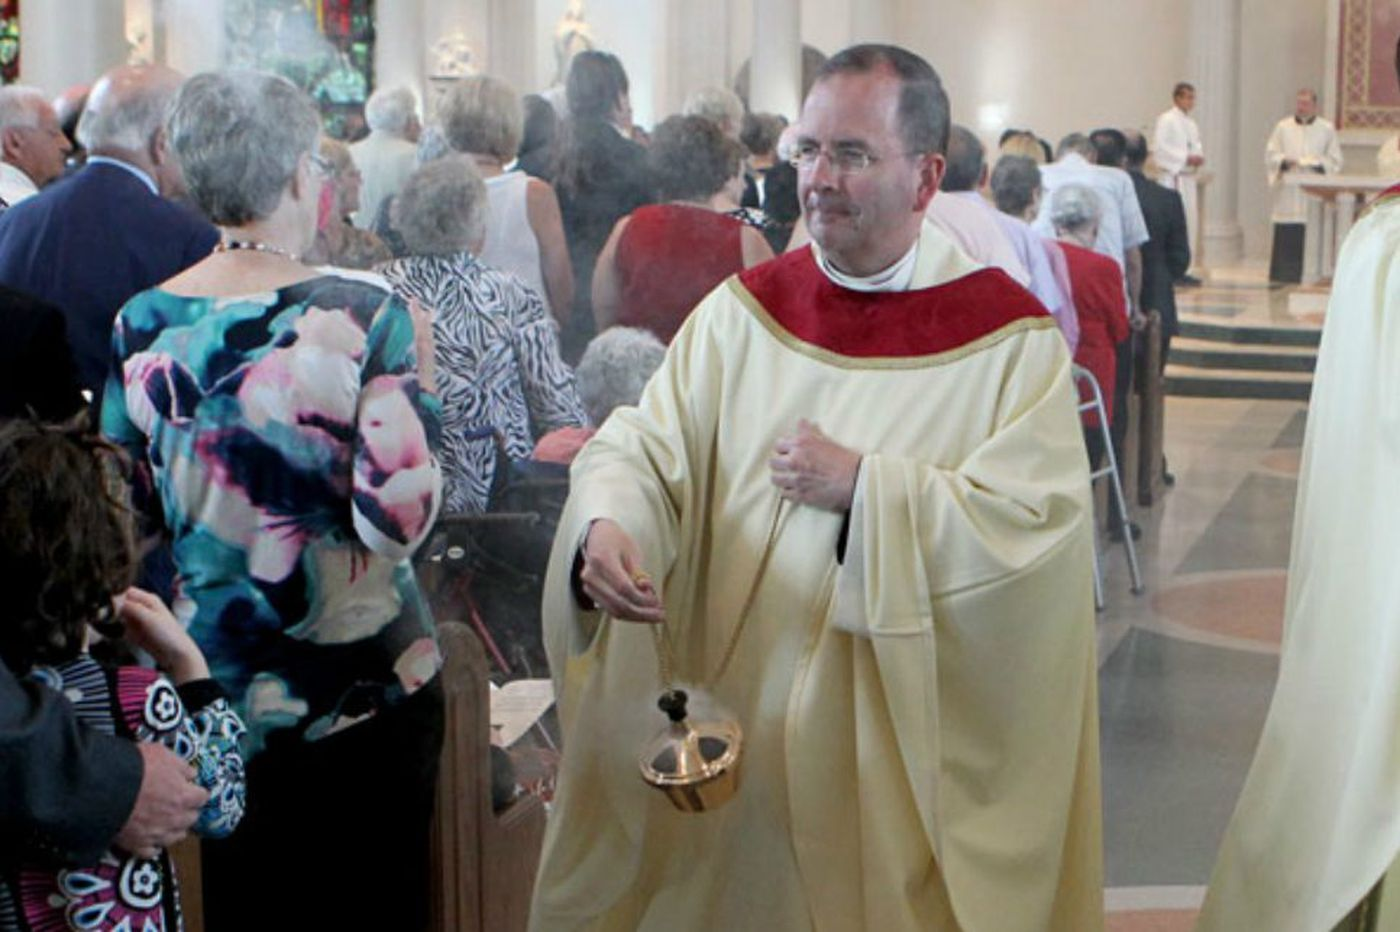 Downingtown pastor resigns after 'inappropriate' expenses, relationships